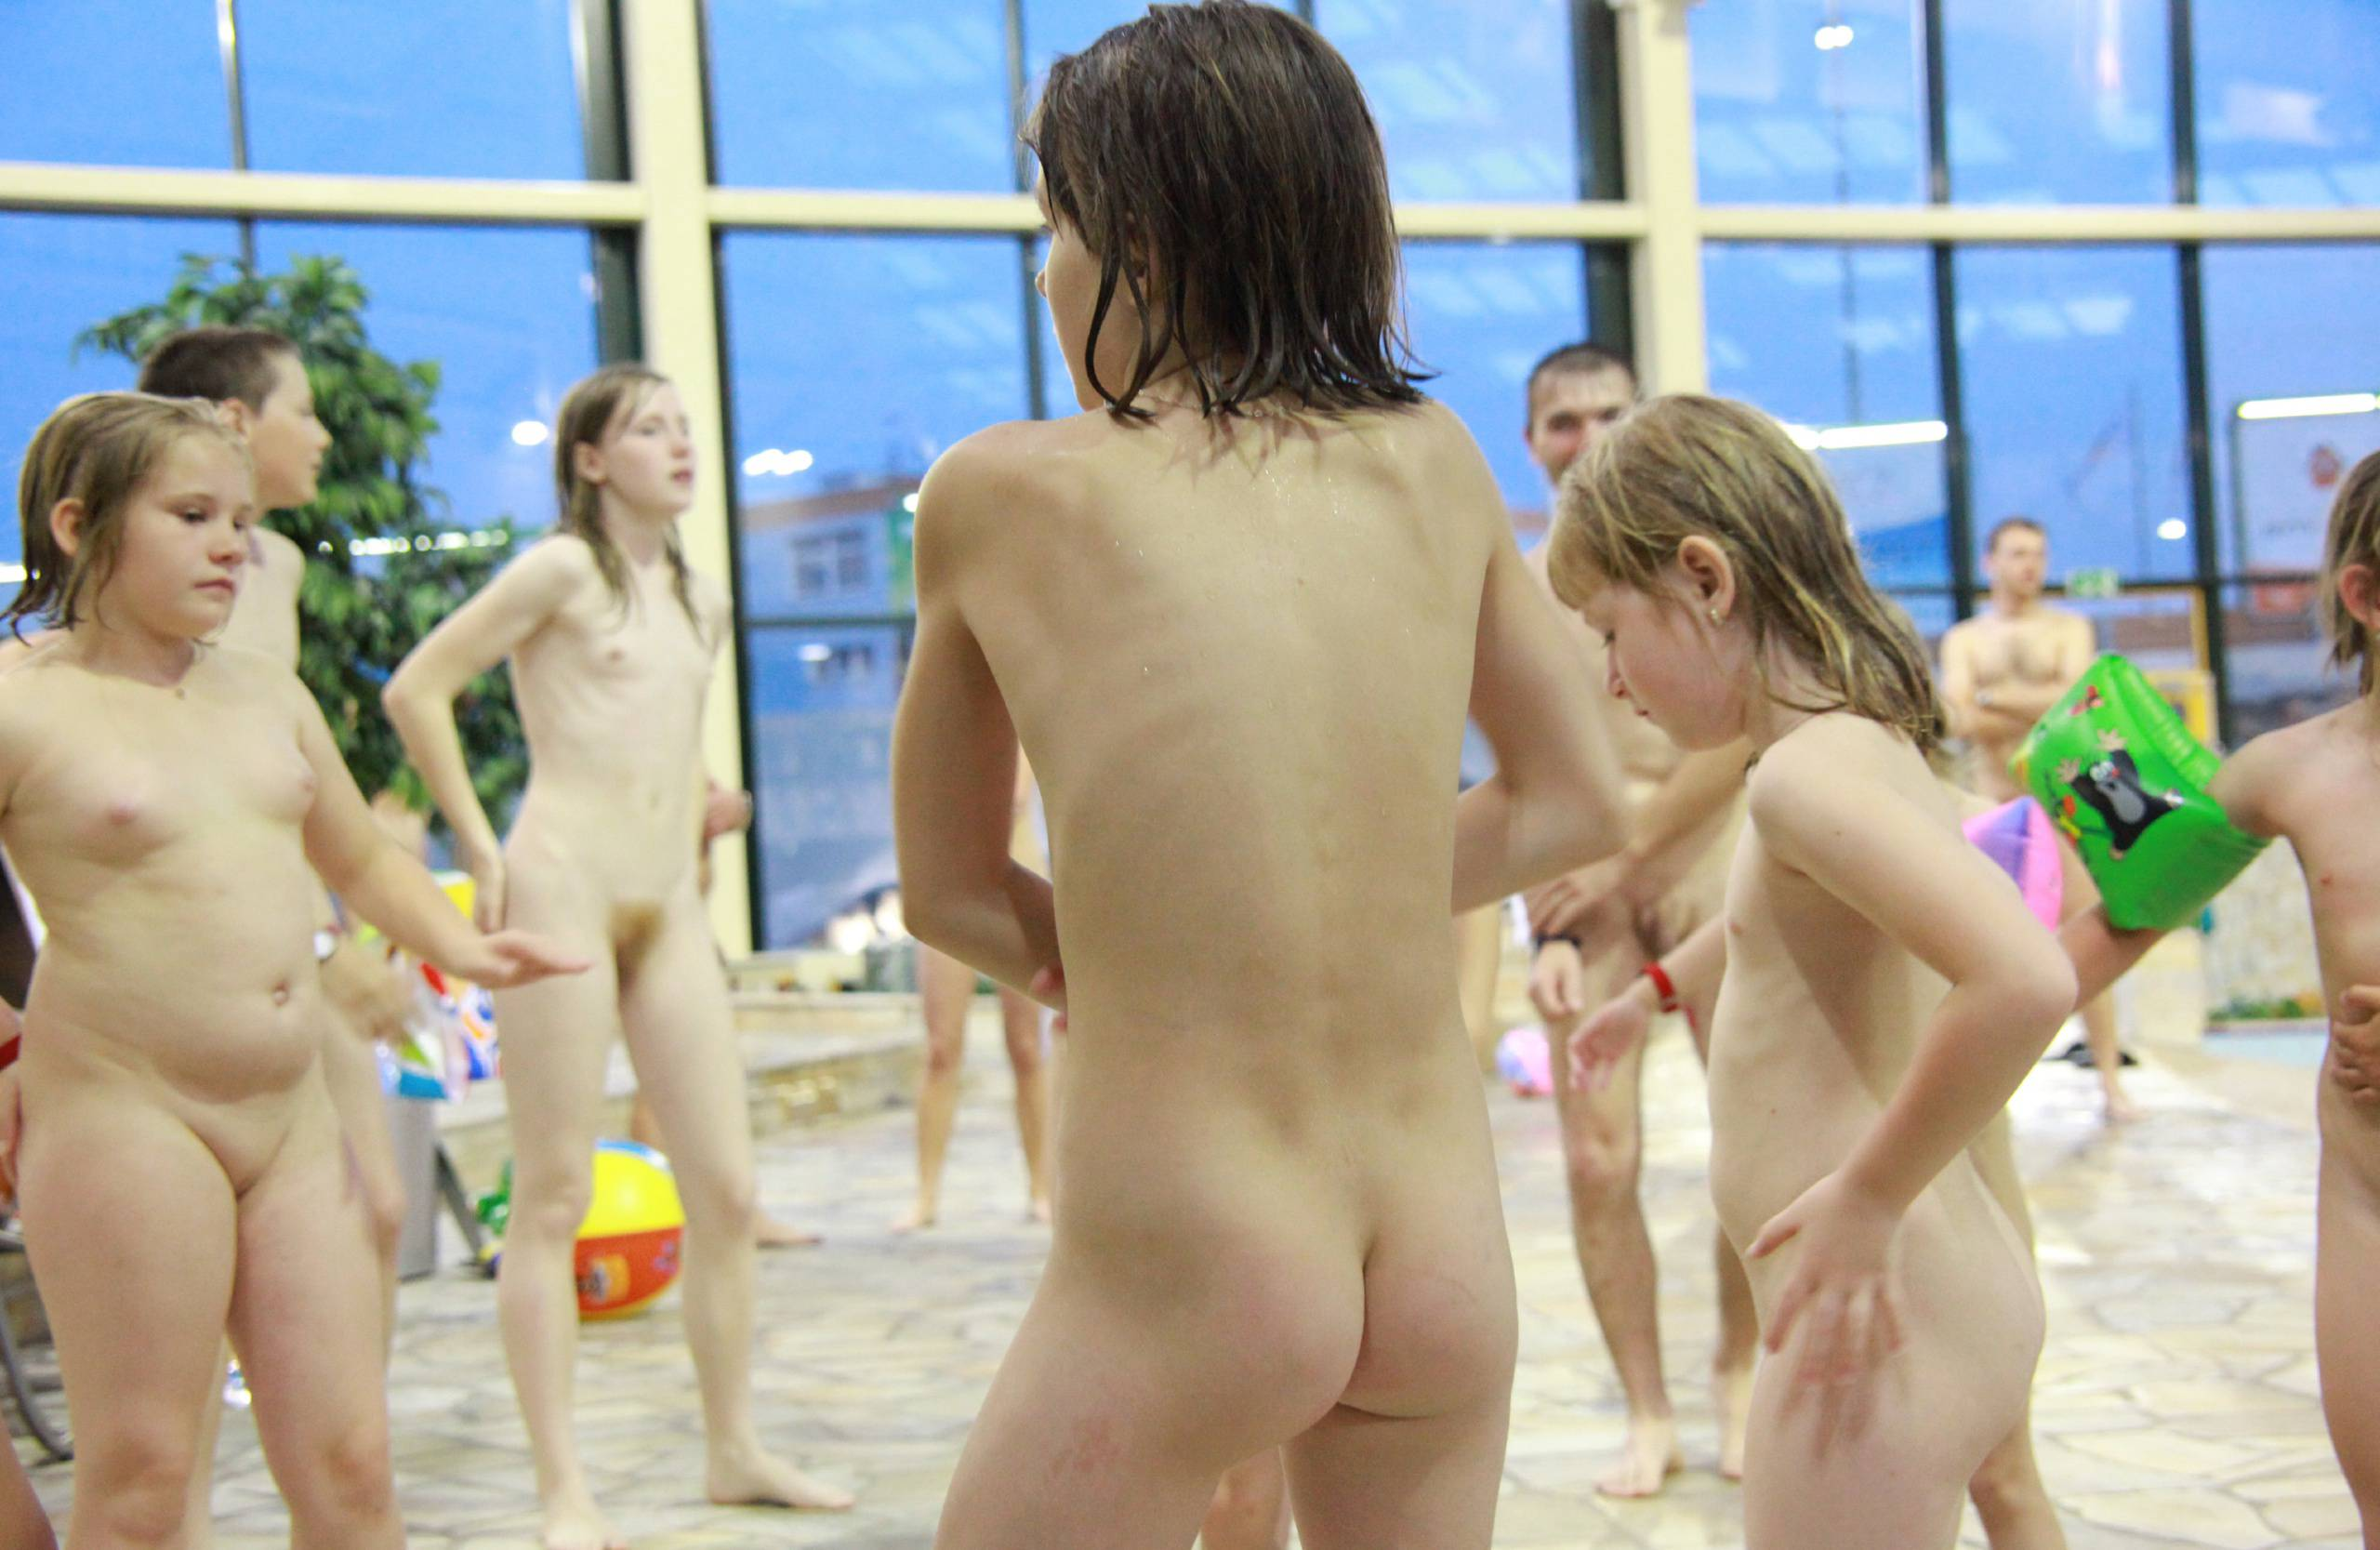 Naturist Party Games - 1